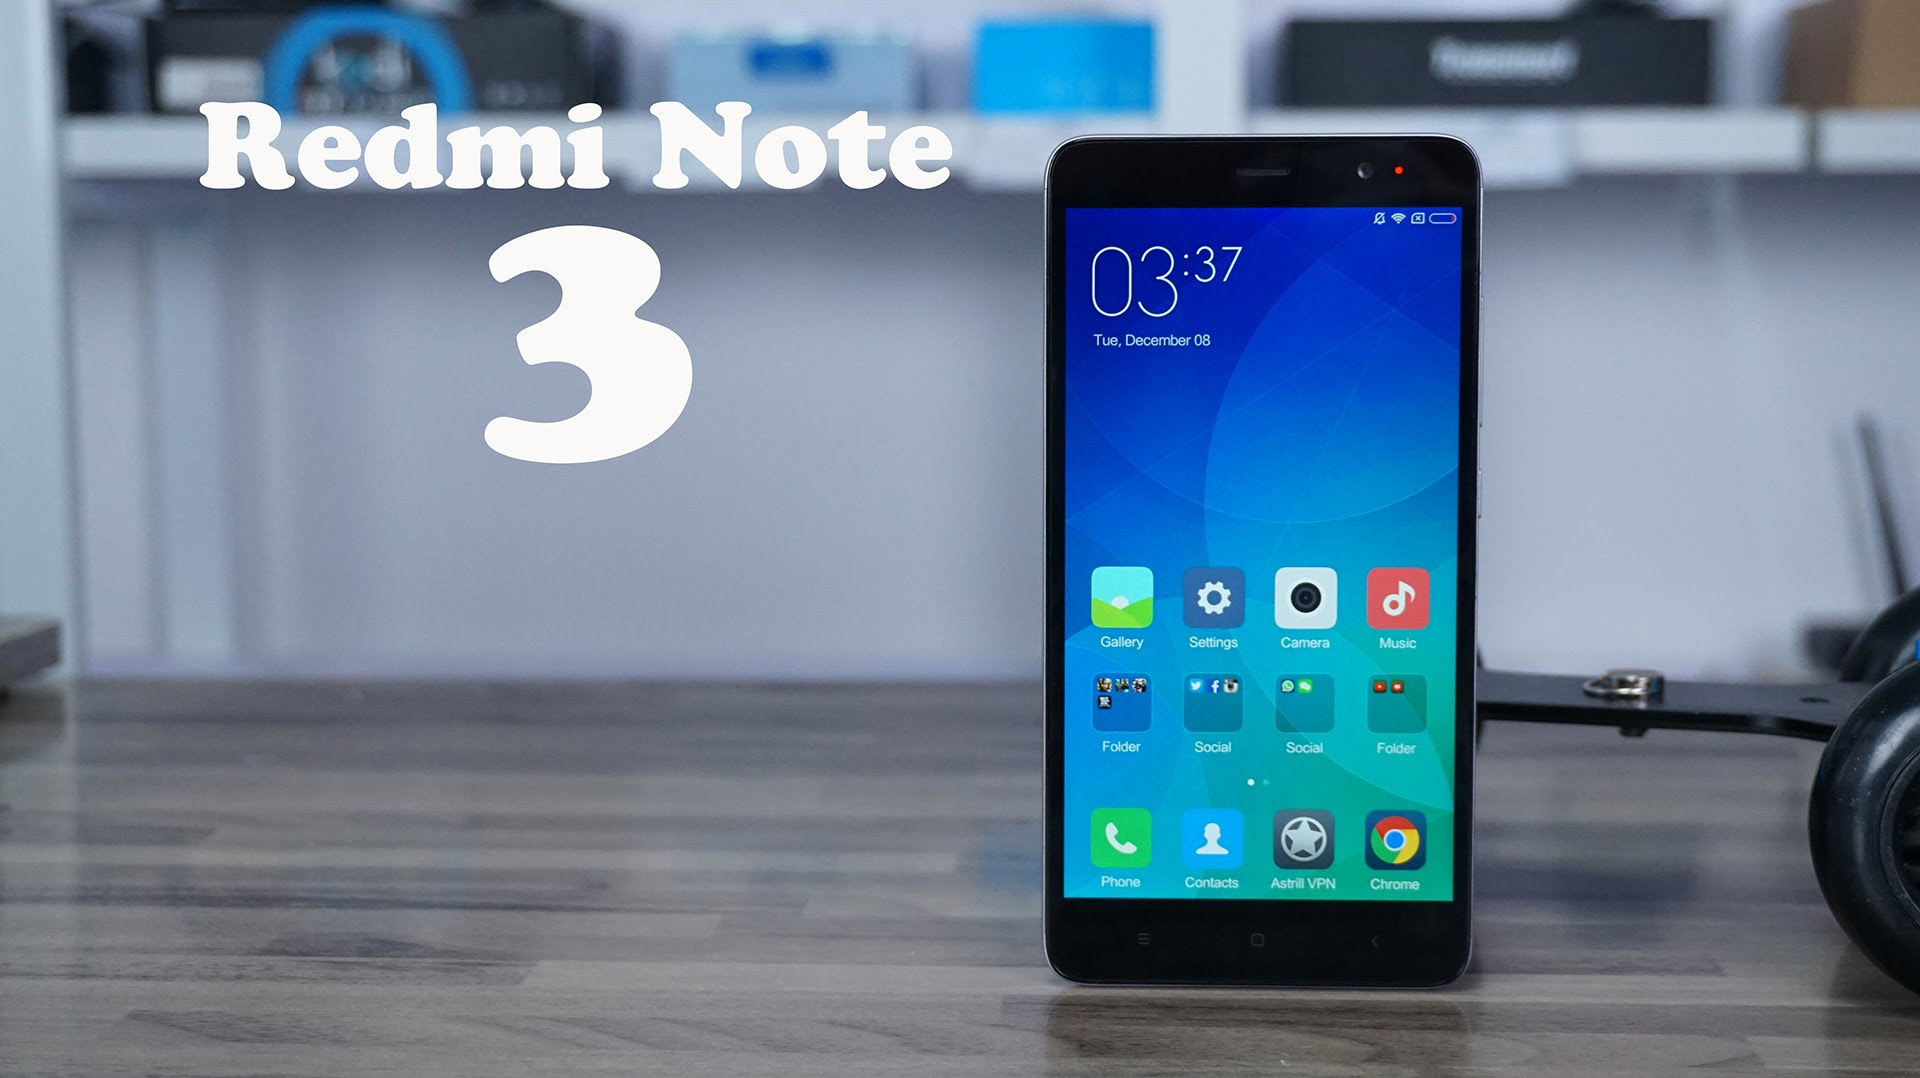 Latest Smartphone Reviews: Xiaomi Redmi Note 3 with an Outstanding Design but a Lackluster Rear Shooter, Huawei P9 with Stunning Cameras and High Performance Hardware